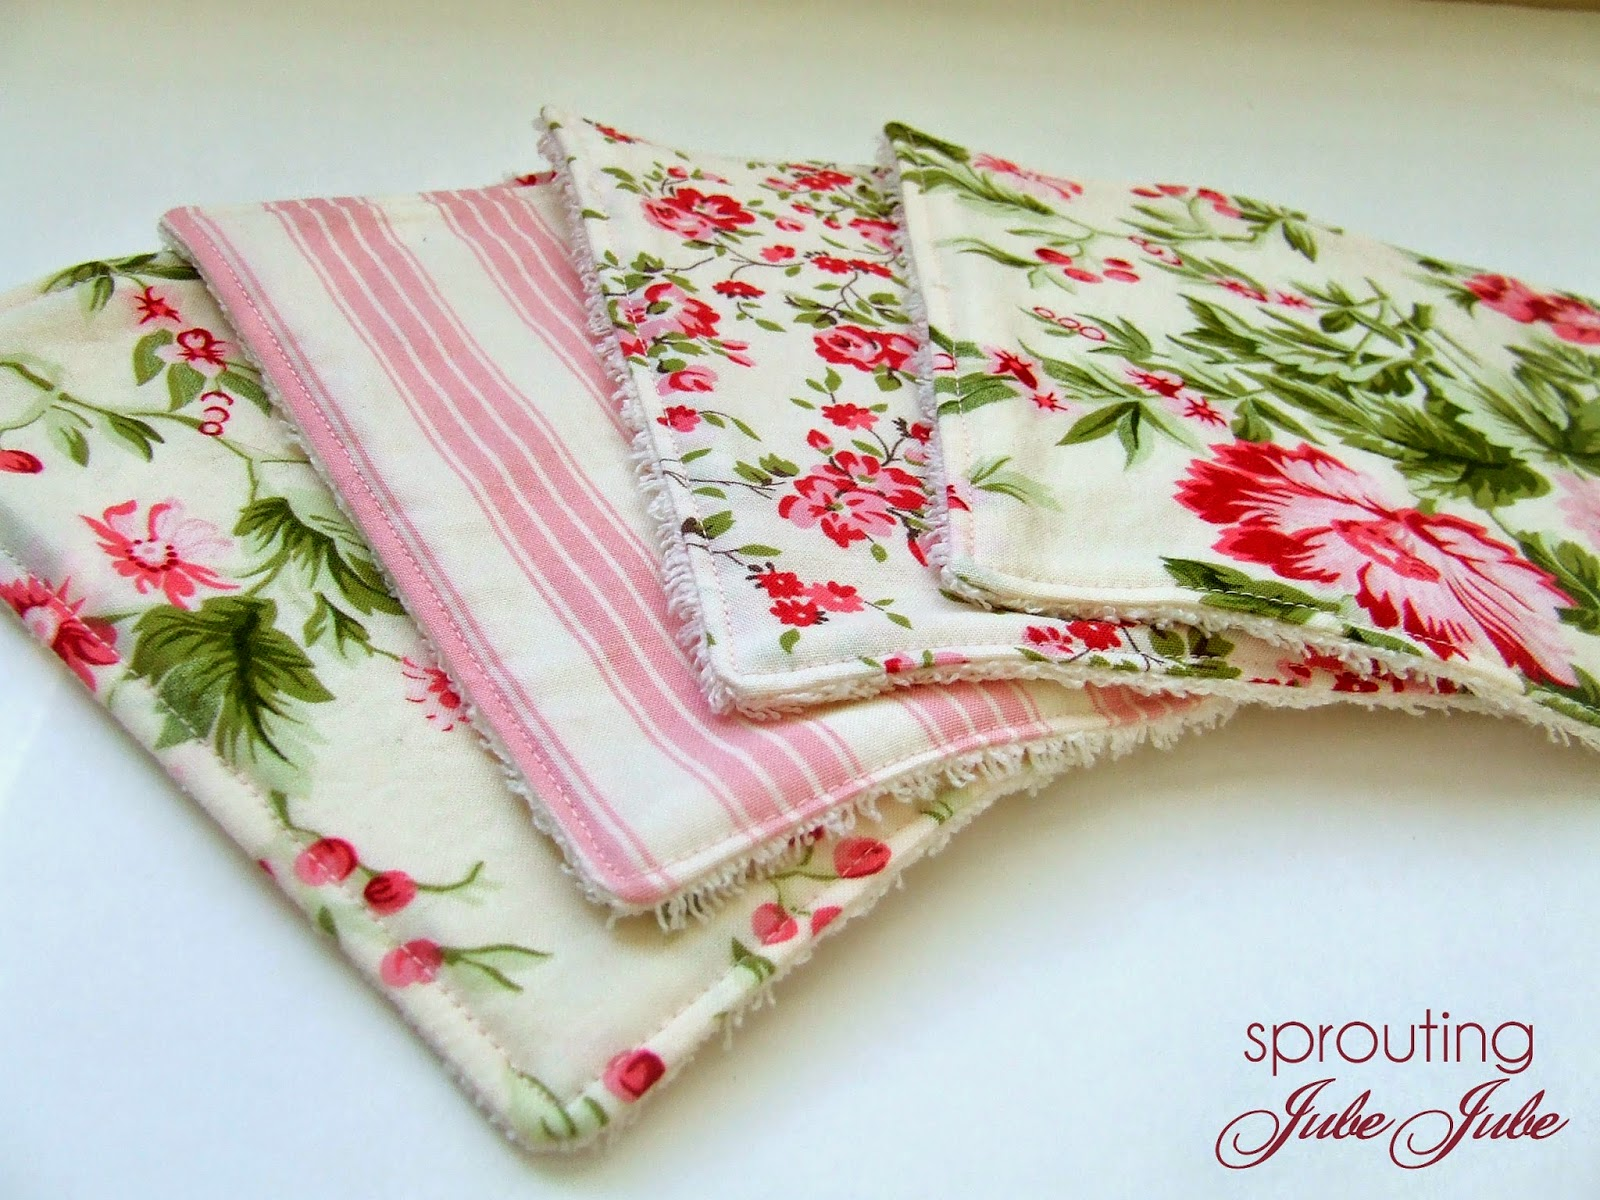 Sprouting JubeJube: Rose By Any Other Name